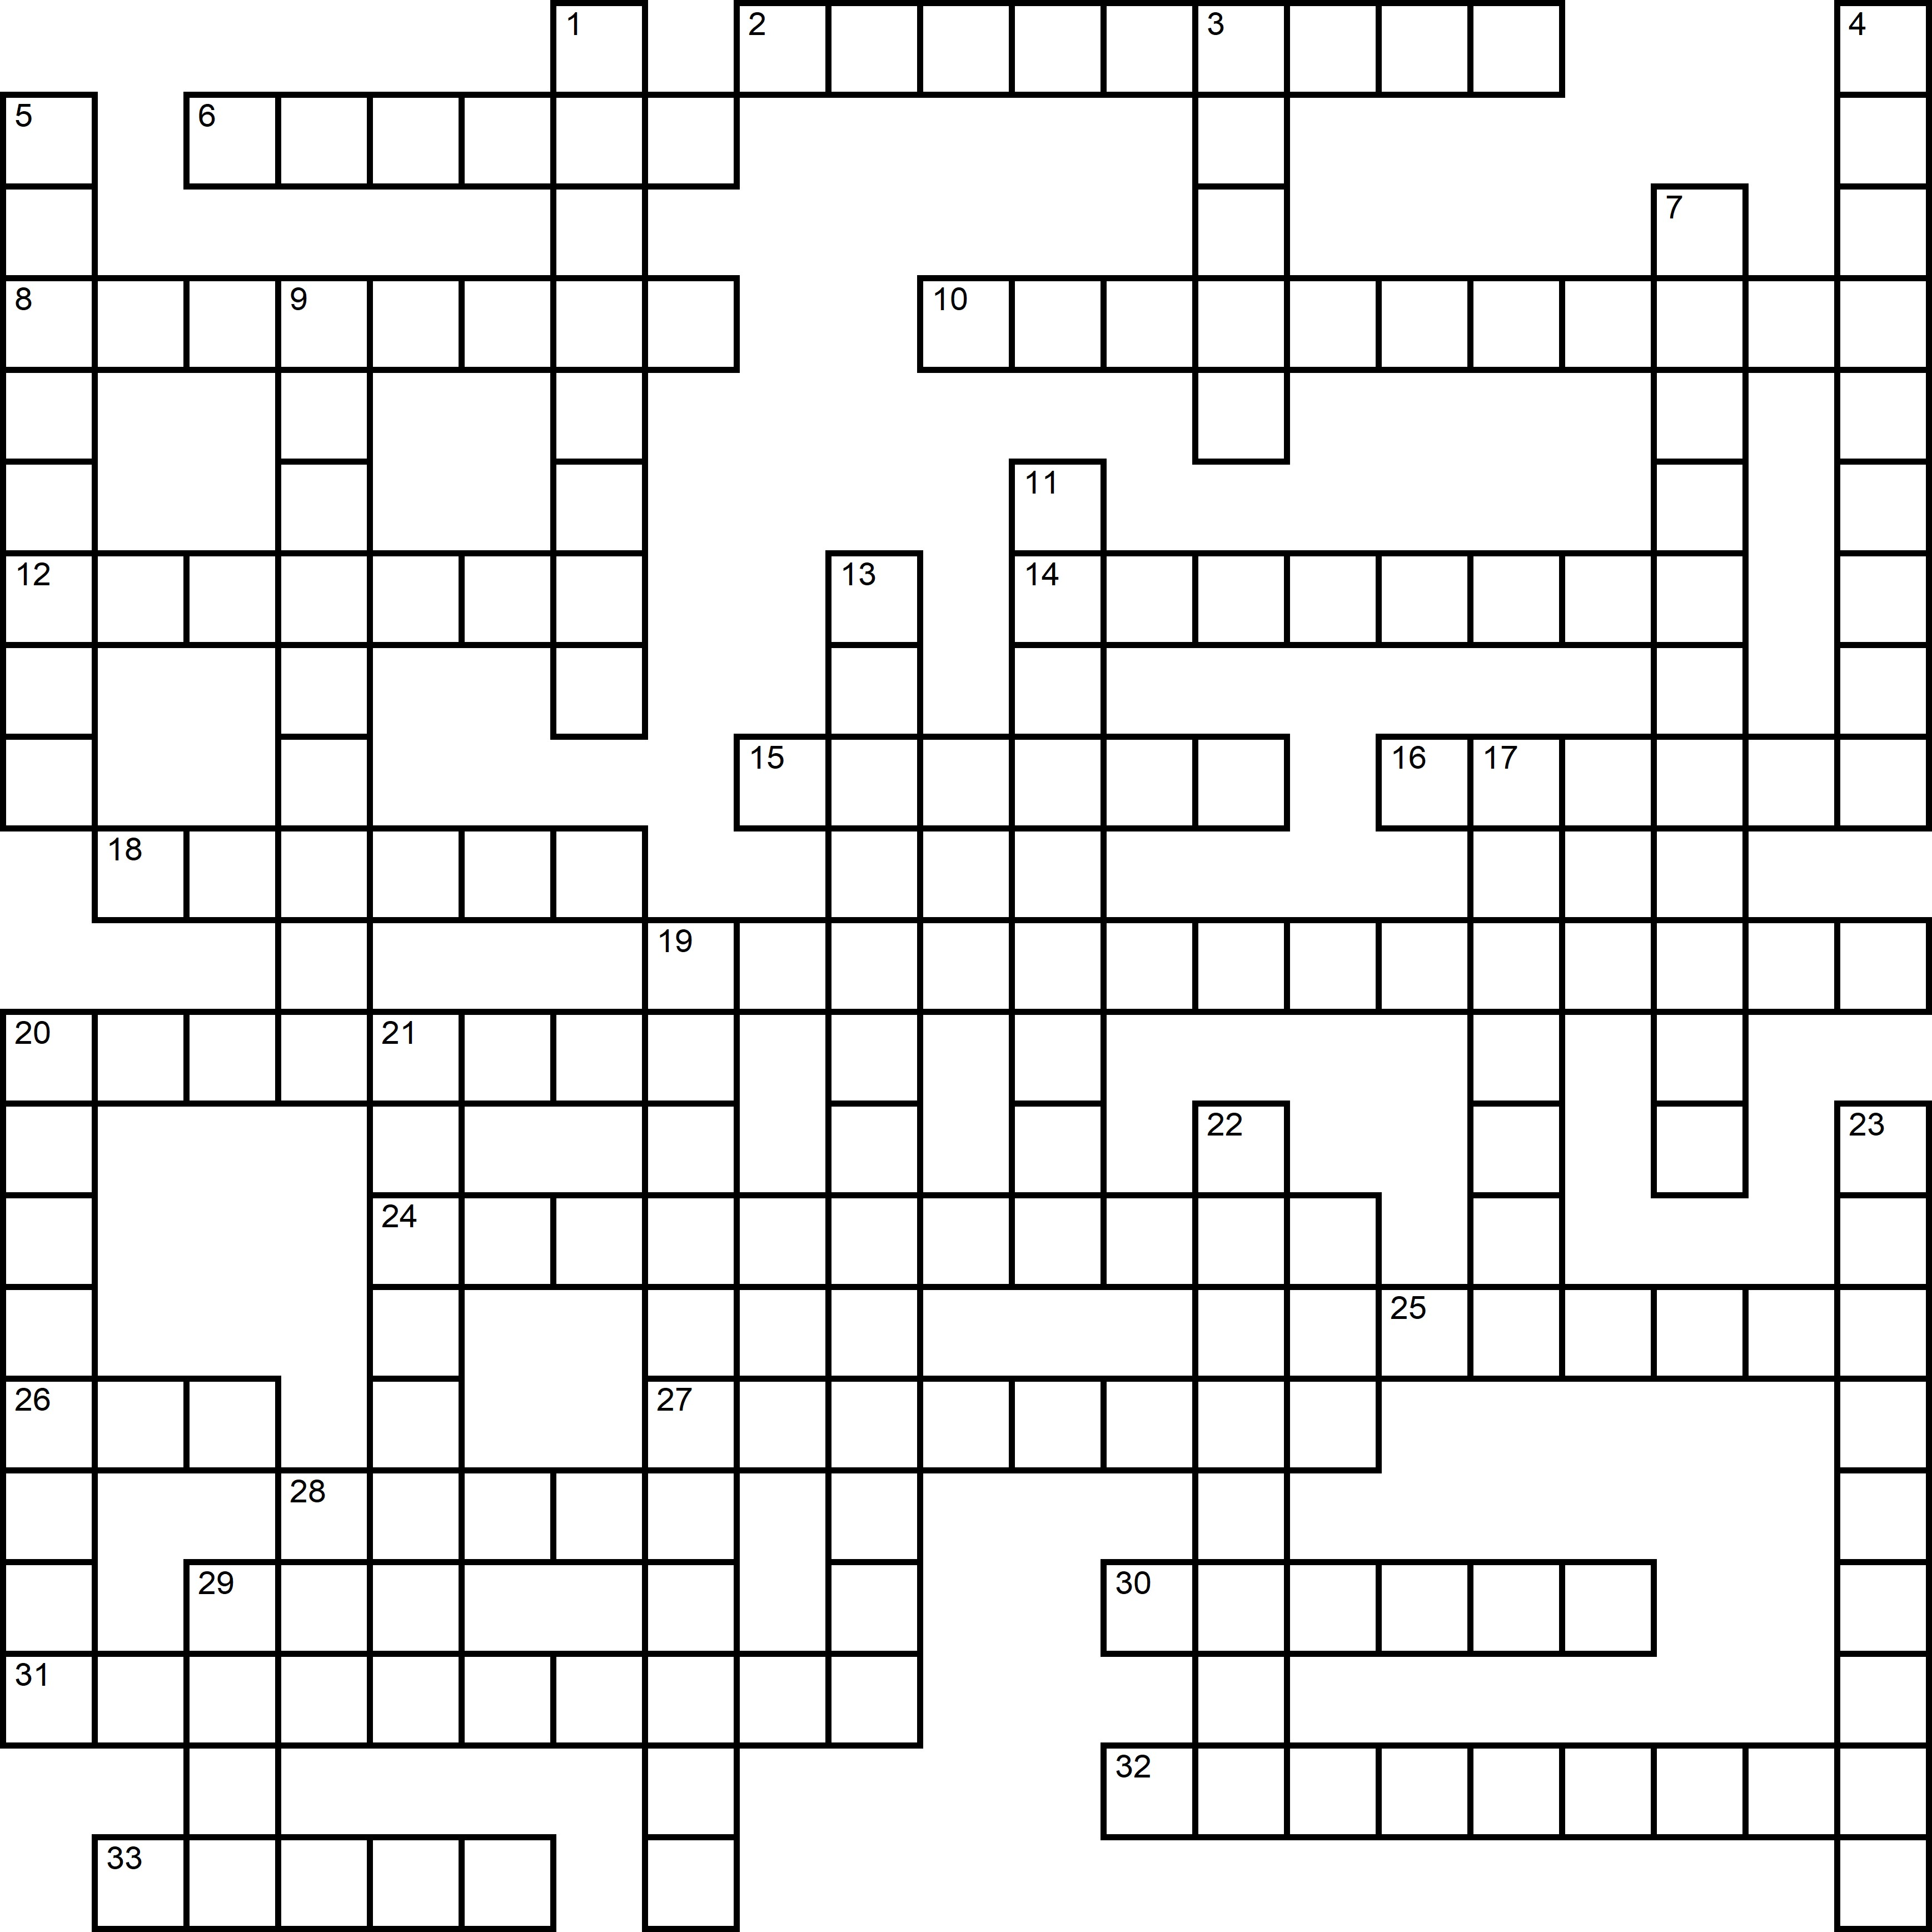 Easy Crossword About World Refugee Day